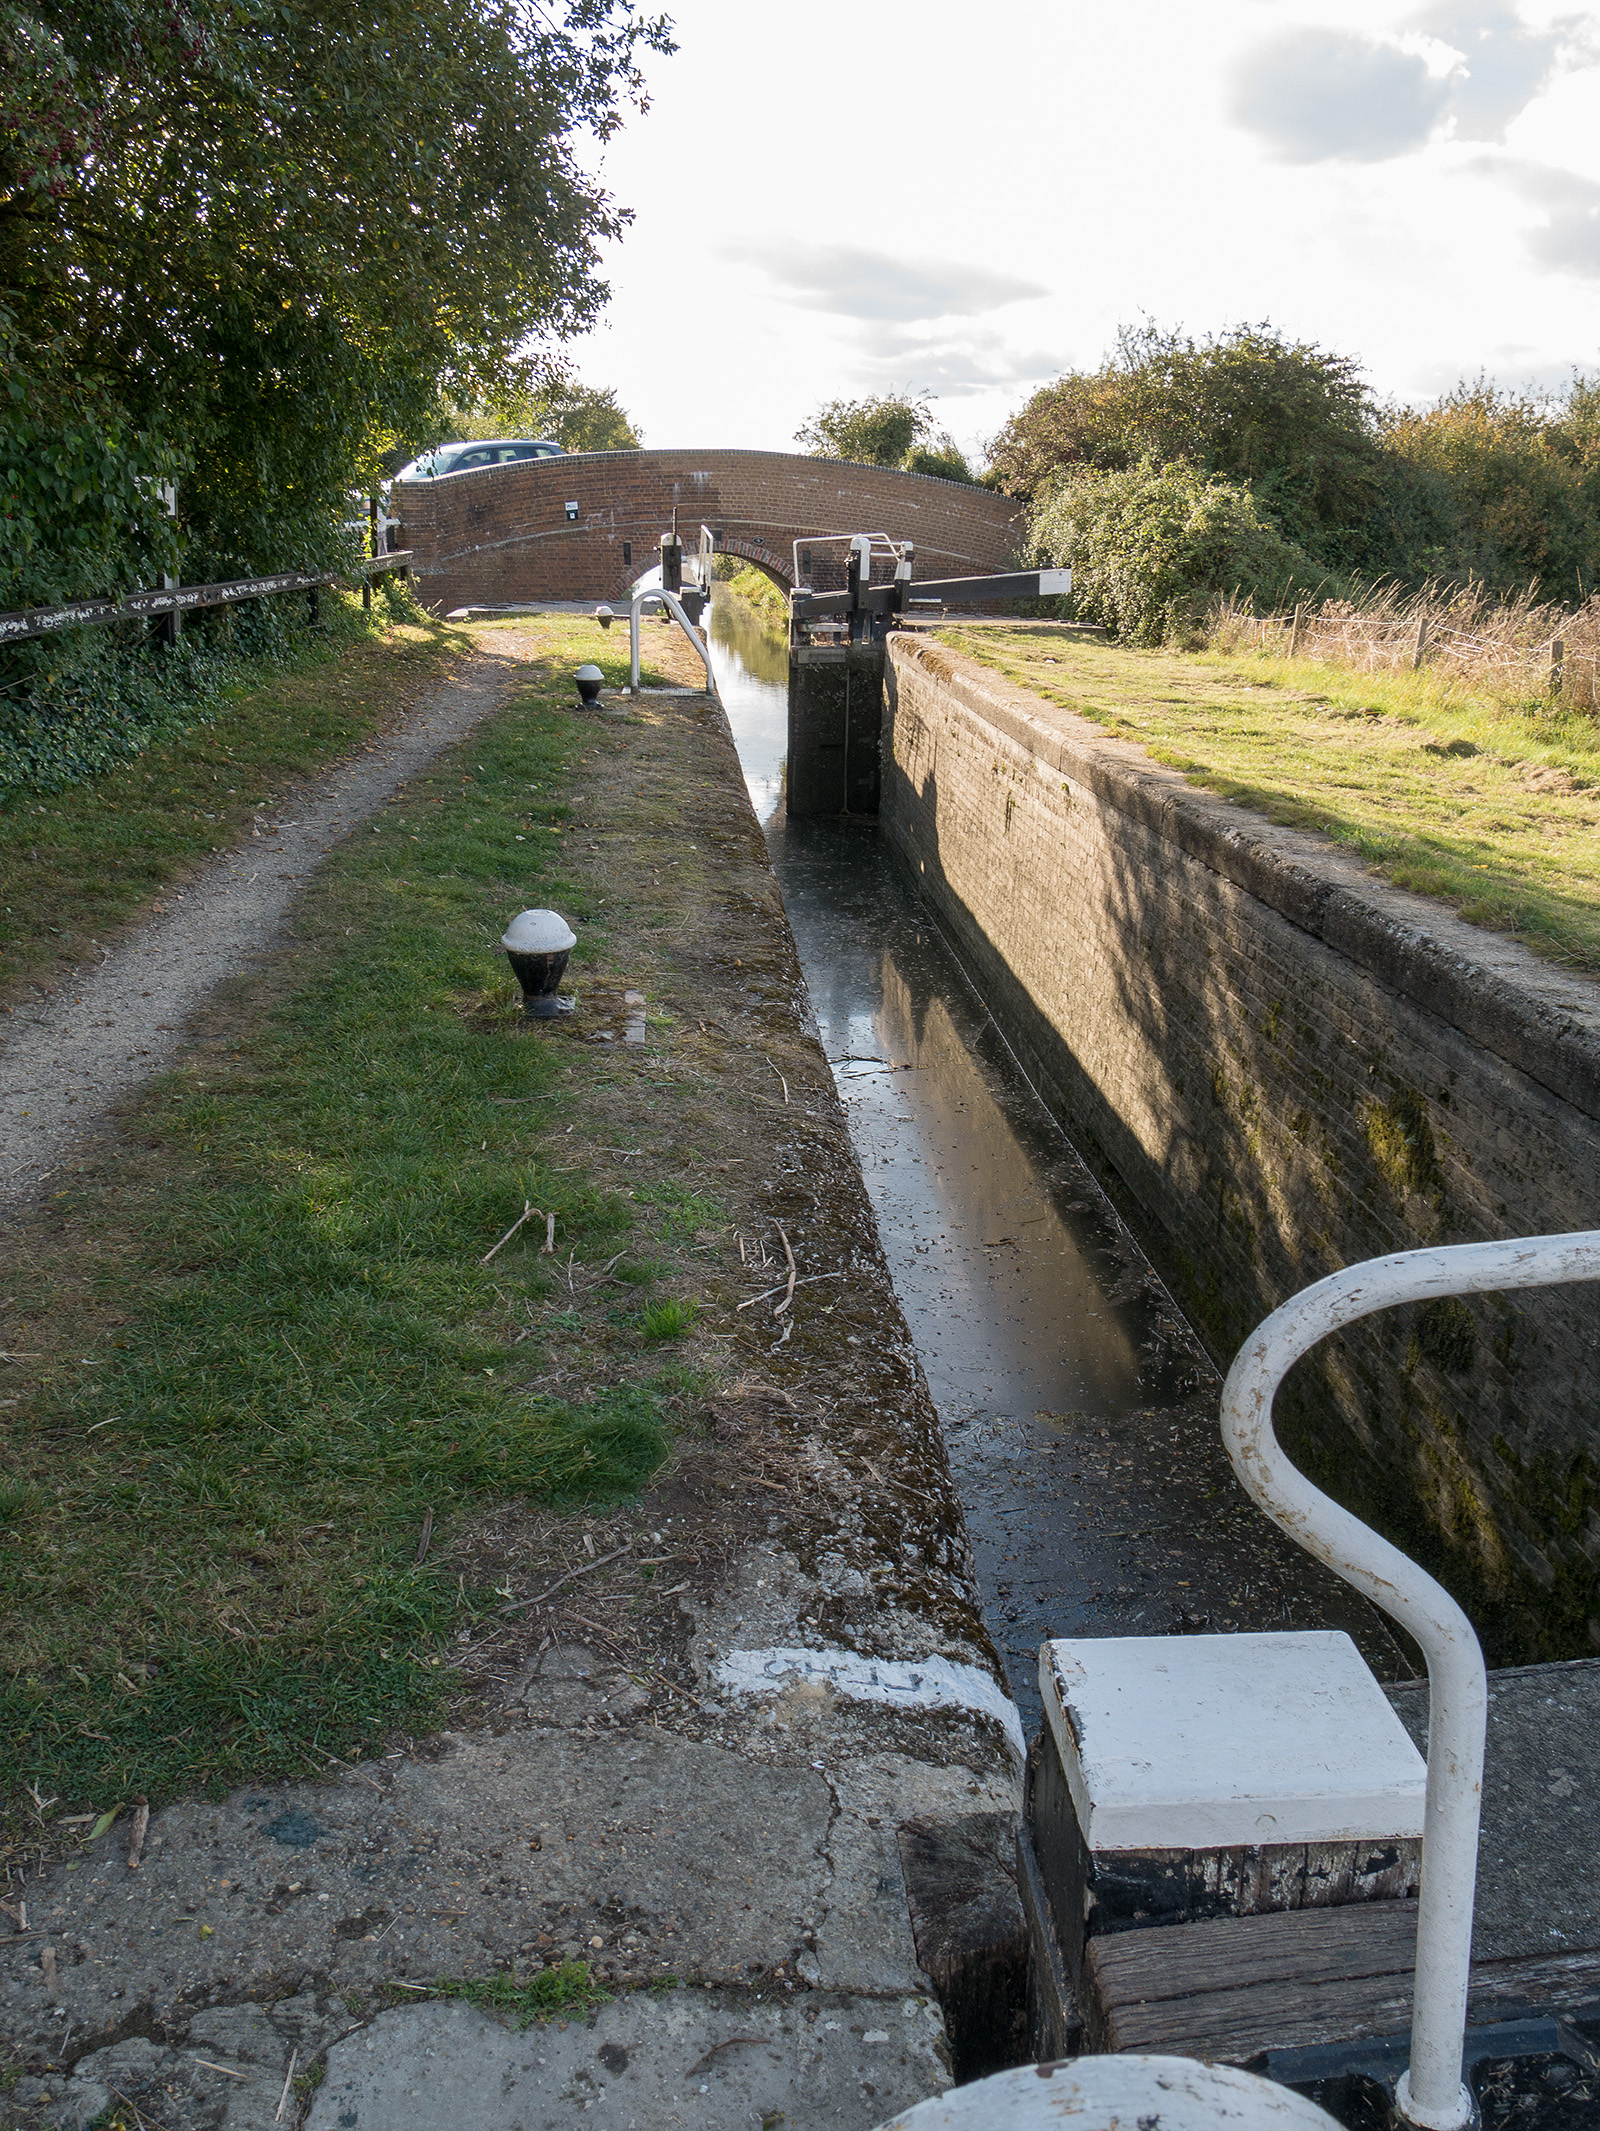 Typical narrow lock and half width gates at the far end. The dry lock walls indicate that the lock has not been used recently.